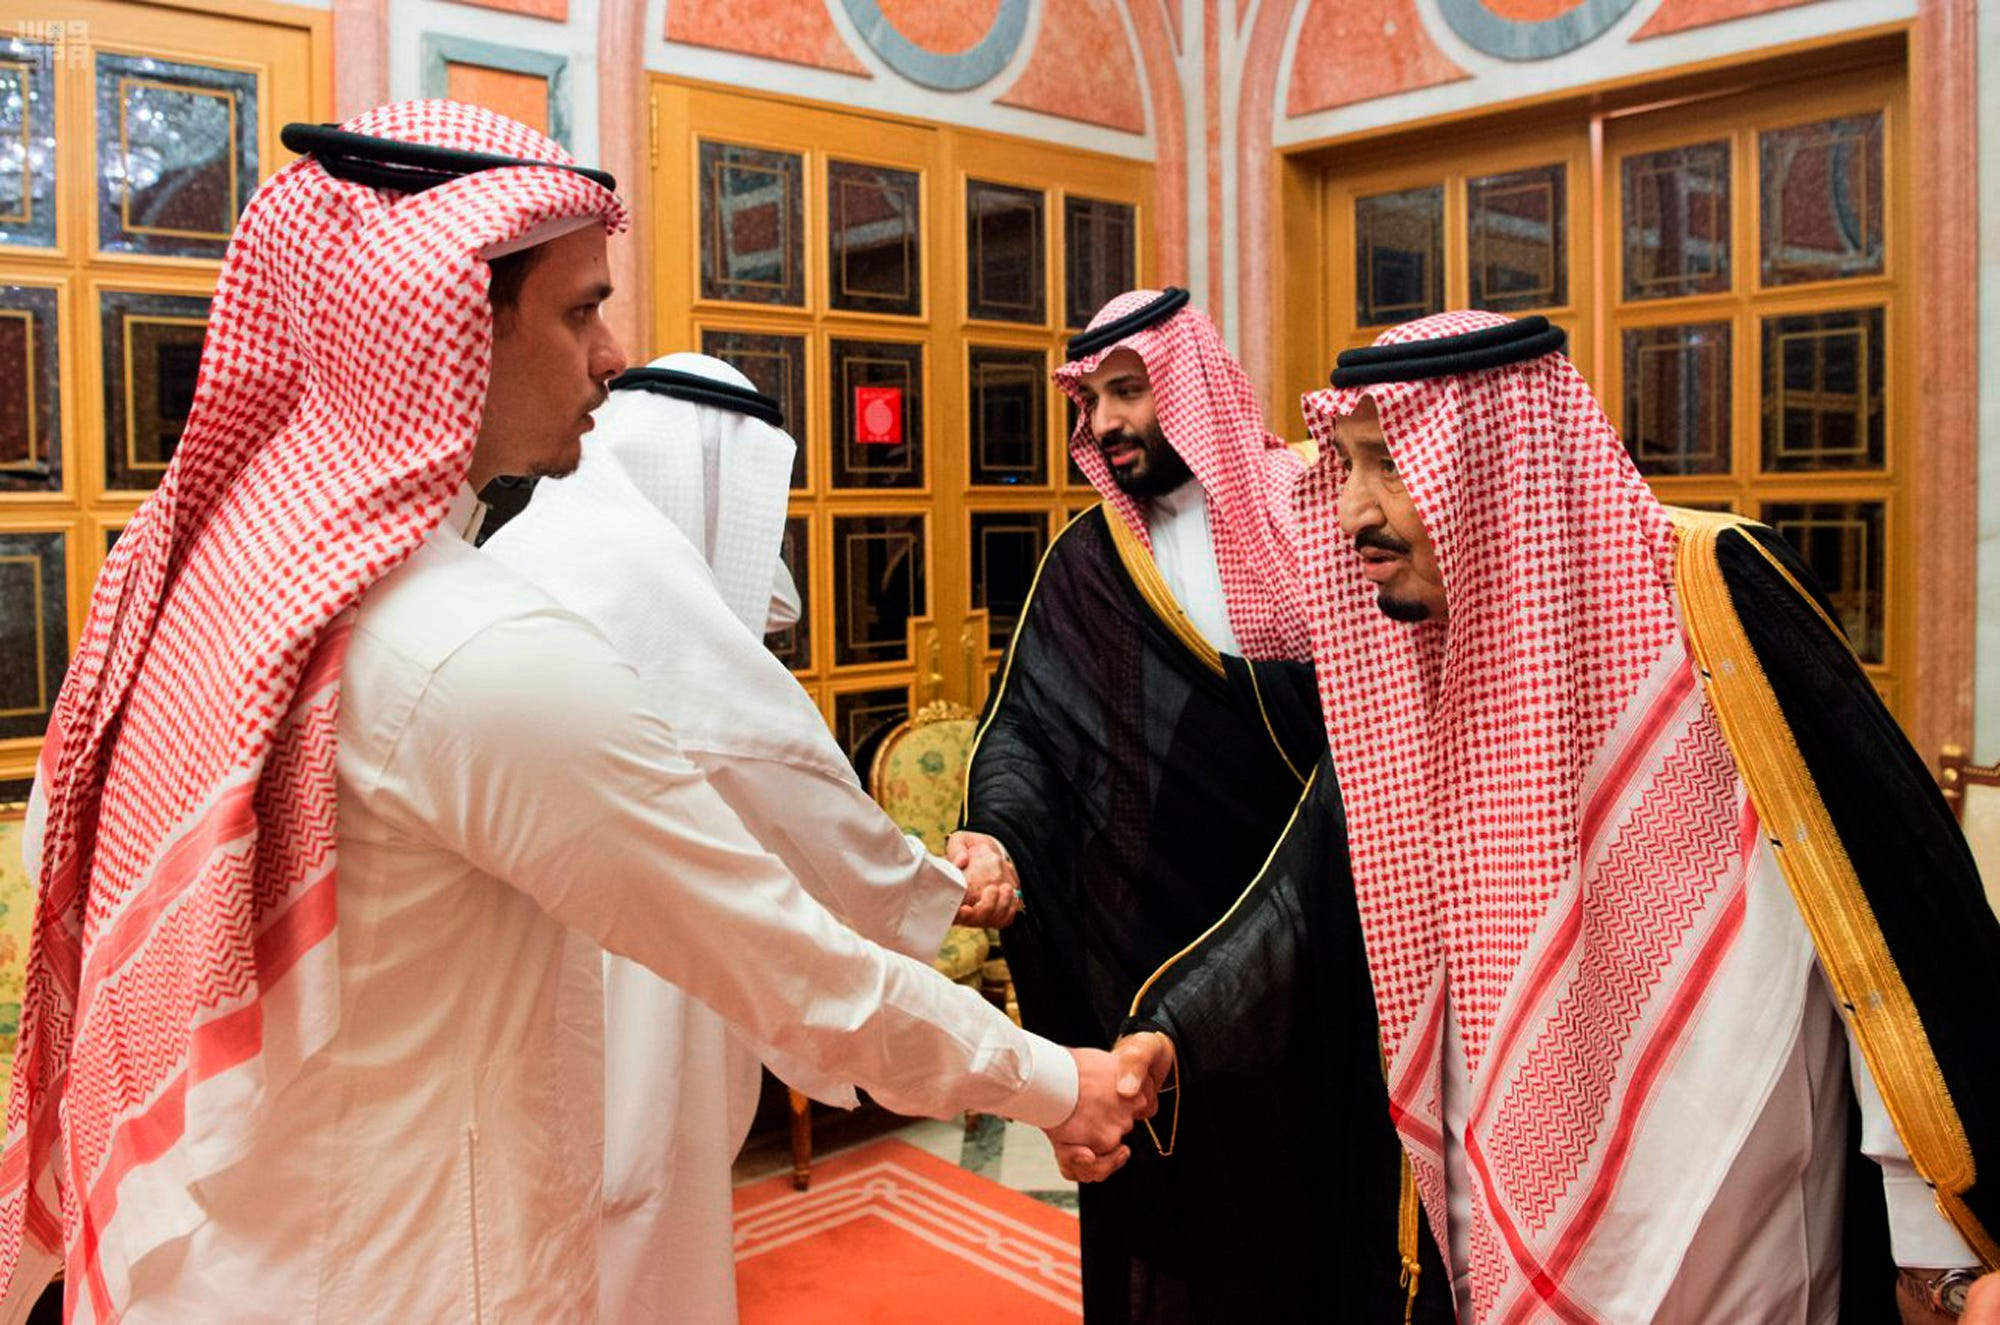 """Saudi King Salman, right, and Crown Prince Mohammed bin Salman, second right, receive Sahel, a family member, and Salah, a son, of Jamal Khashoggi, in Riyadh, Saudi Arabia, Tuesday, Oct. 23, 2018. Saudi Arabia, which for weeks maintained that Jamal Khashoggi had left the Istanbul consulate, on Saturday acknowledged he was killed there in a """"fistfight."""""""